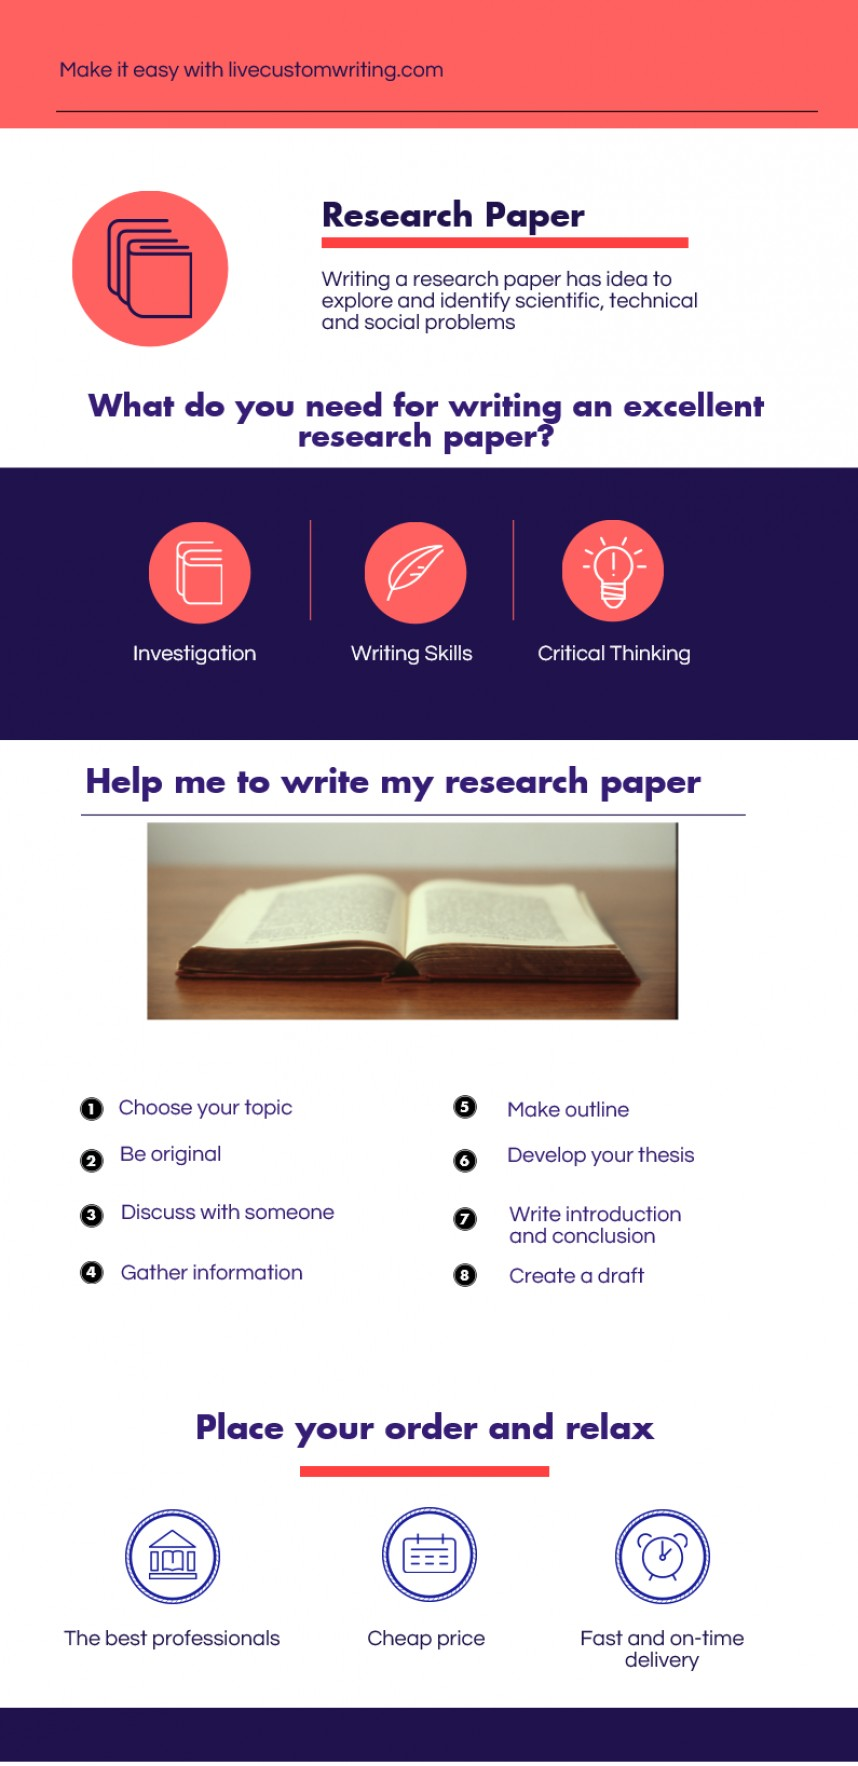 016 Untitled Infographic28229 Write My Research Formidable Paper Introduction For Me Reviews